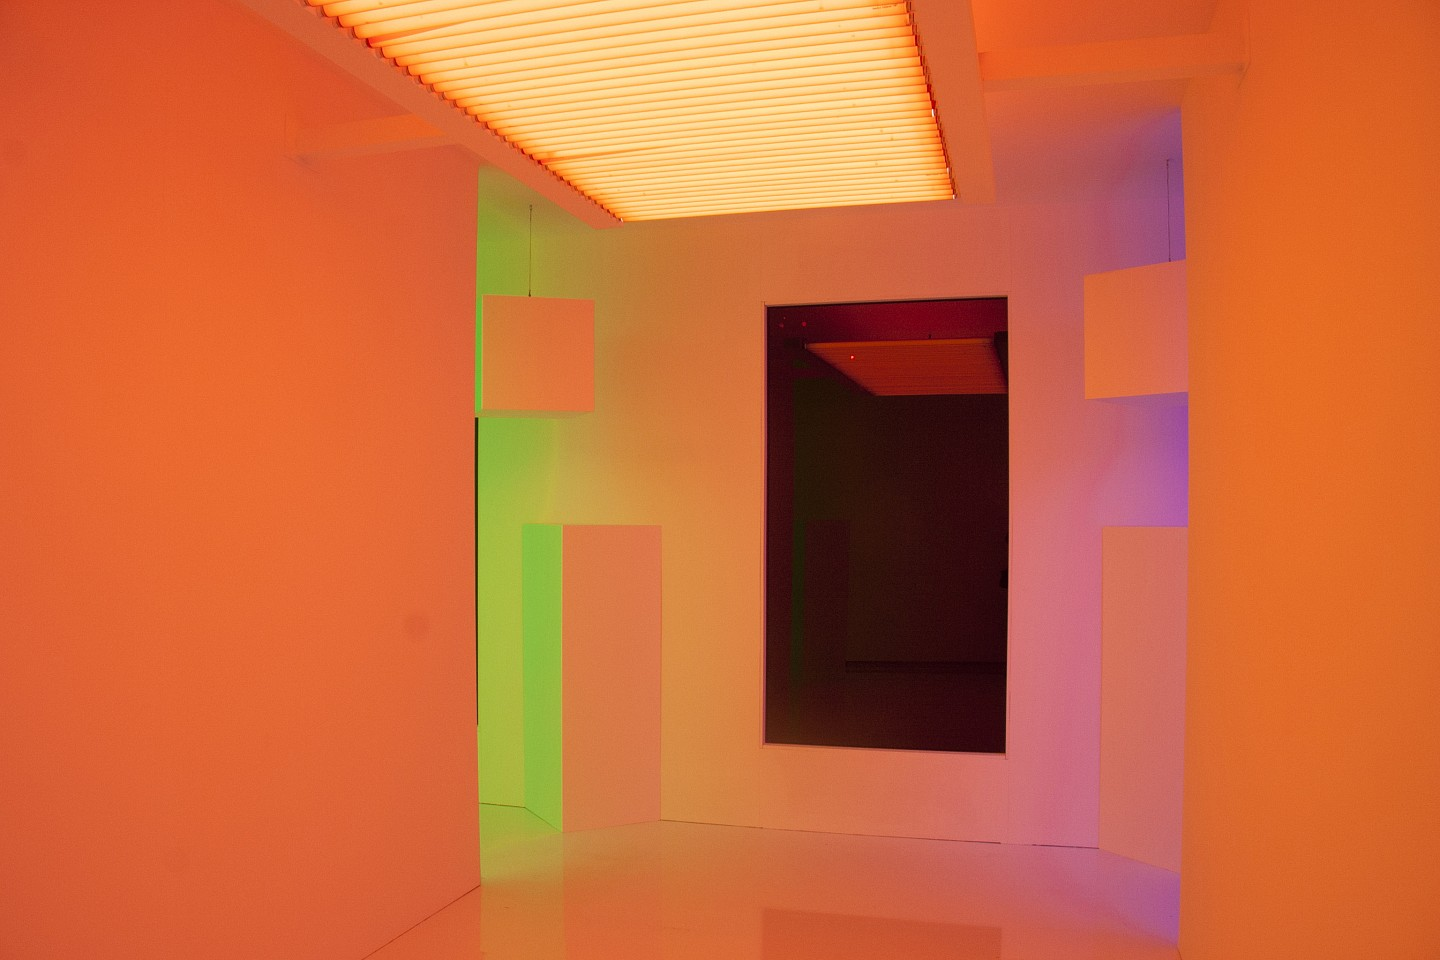 "<p><span class=""viewer-caption-artist"">Carlos Cruz-Diez</span></p> <p><span class=""viewer-caption-title""><i>Chromosaturation</i></span>, <span class=""viewer-caption-year"">1965/2018</span></p> <p><span class=""viewer-caption-media"">Mixed Media</span></p> <p><span class=""viewer-caption-inventory"">CCD0001</span></p> <p><span class=""viewer-caption-aux""></span></p>"